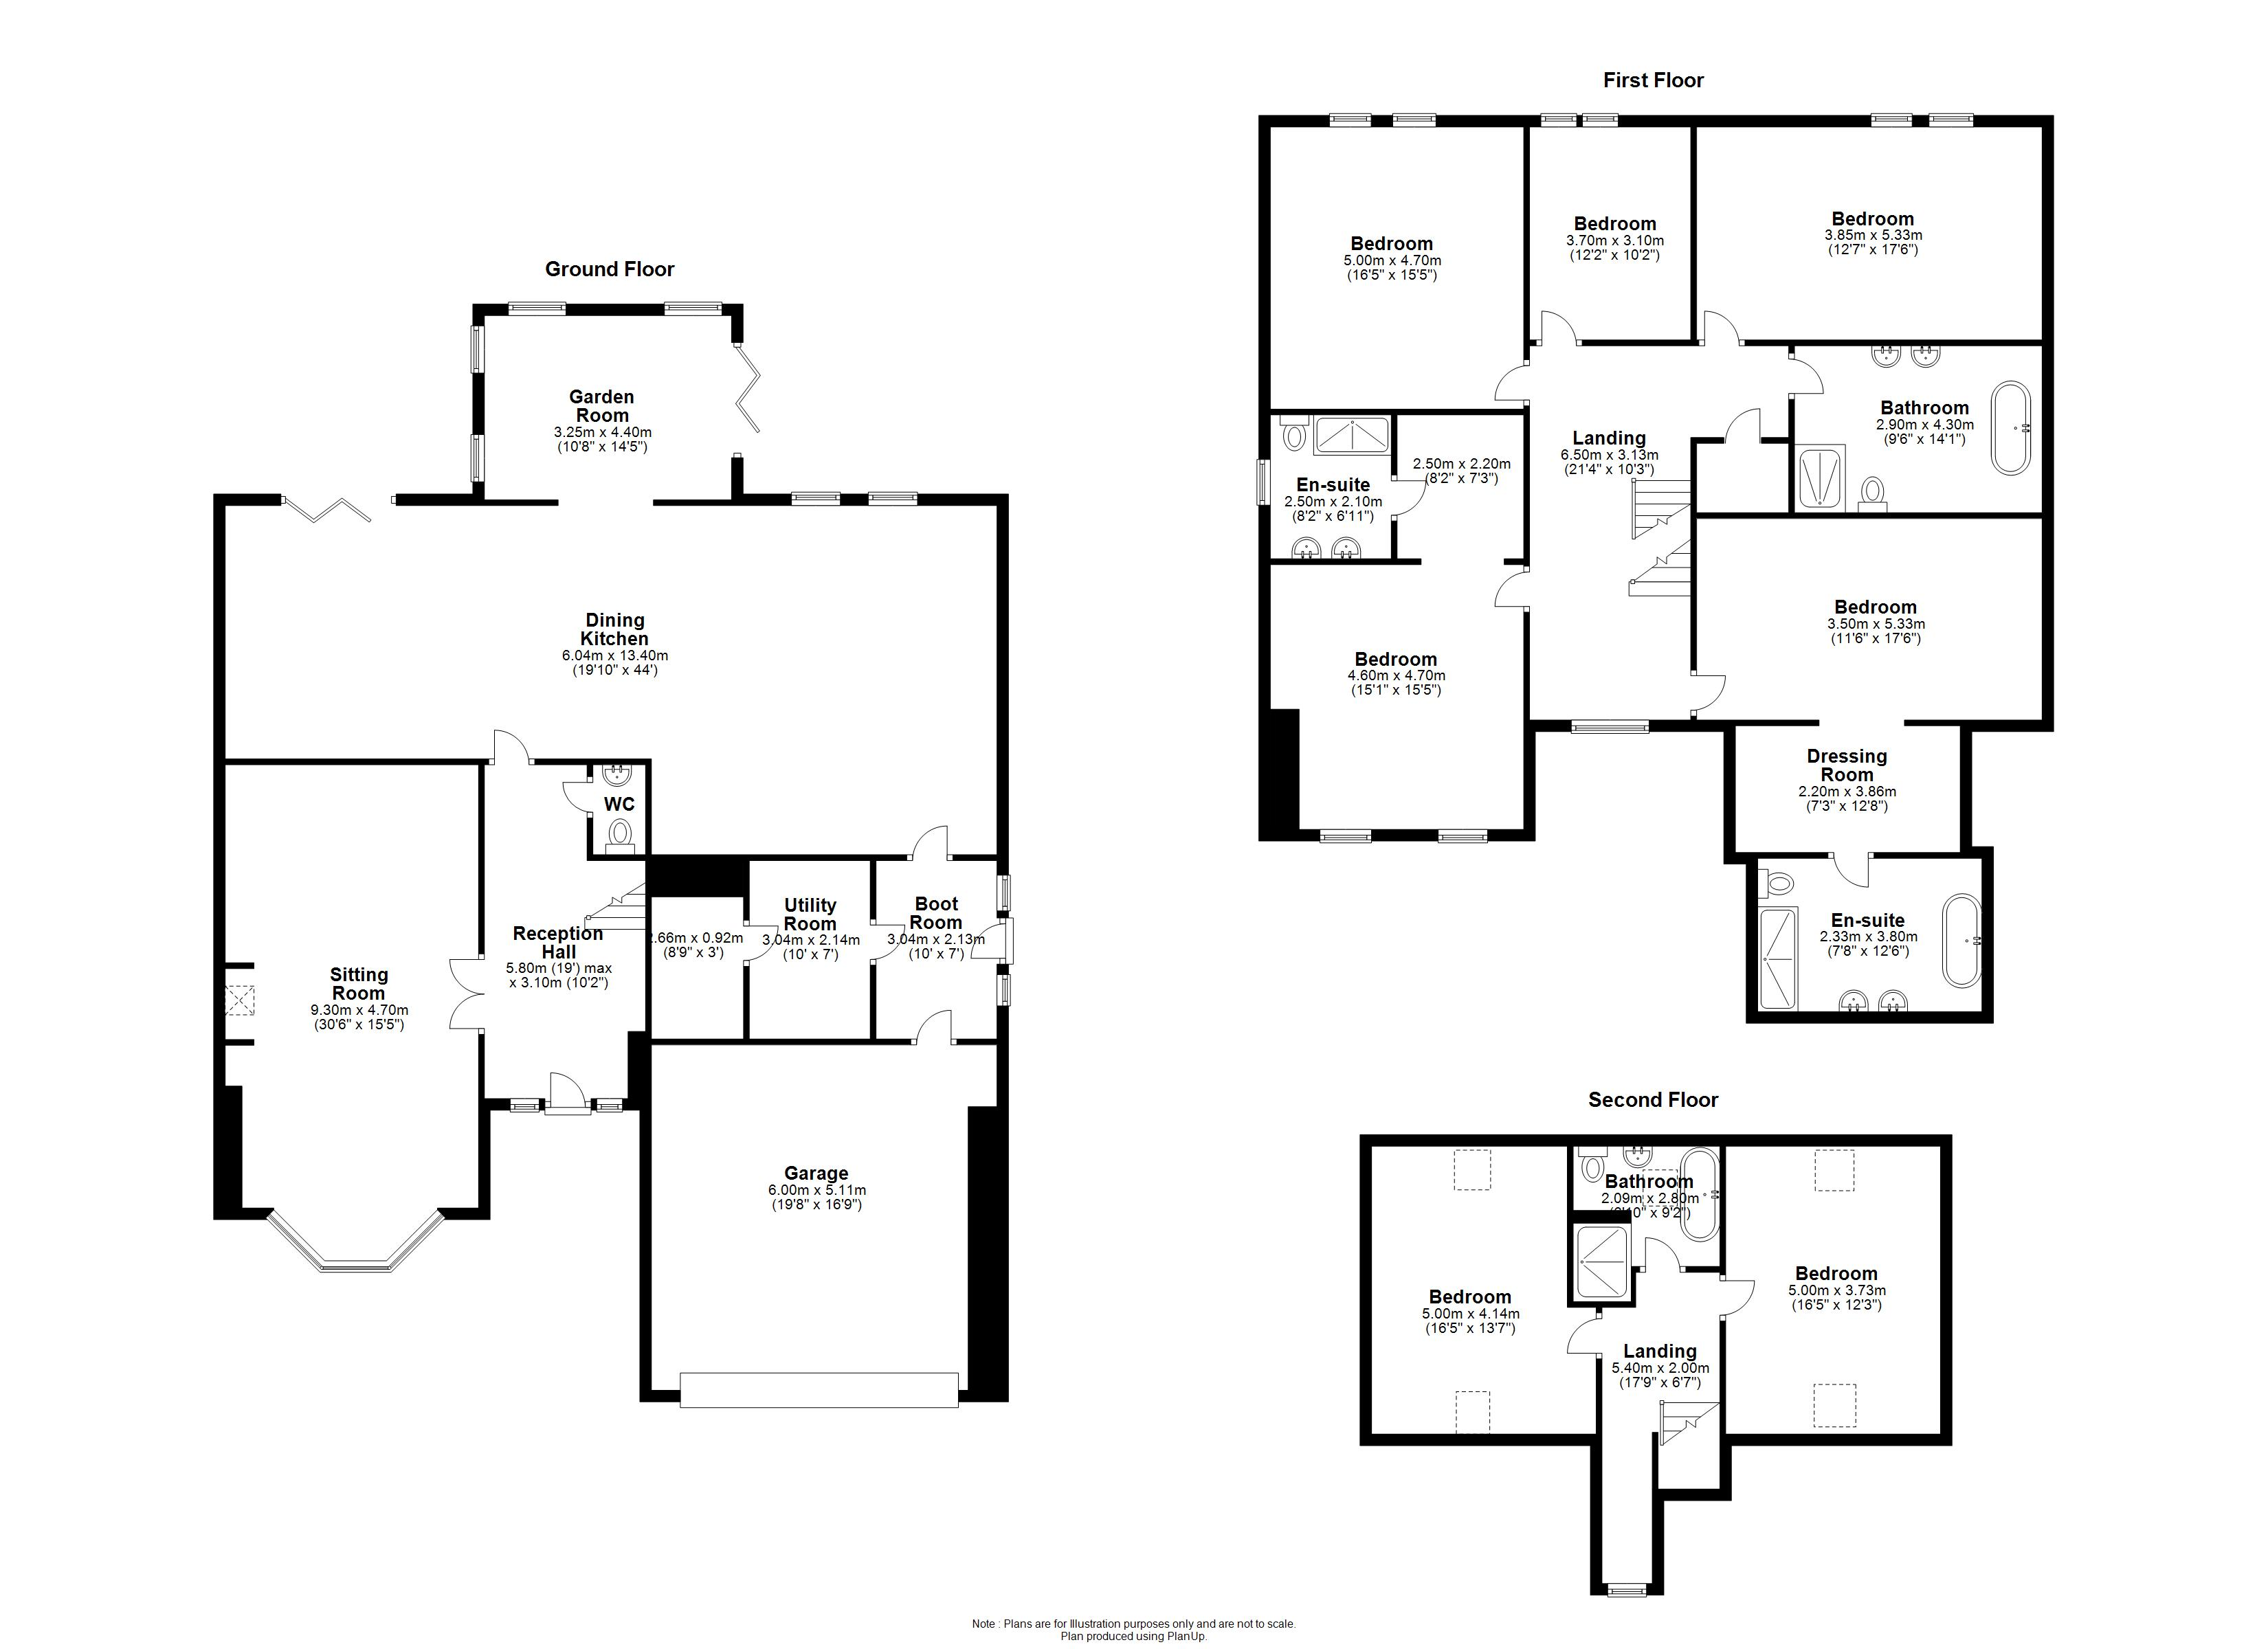 7 Bedroom House For Sale In United Kingdom